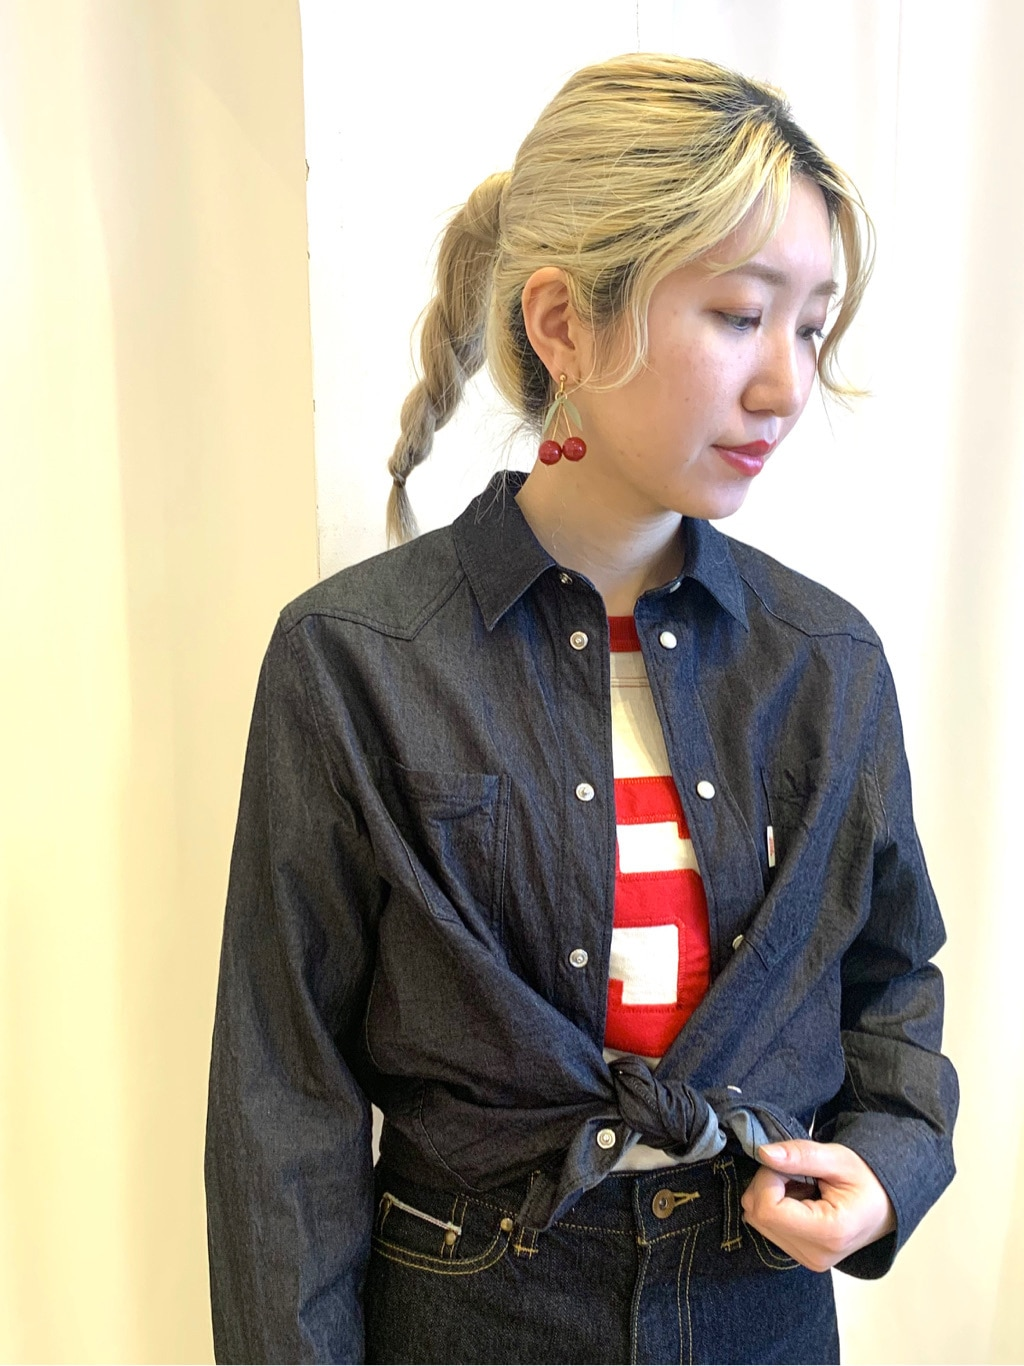 Dot and Stripes CHILD WOMAN ラフォーレ原宿 身長:160cm 2021.01.23